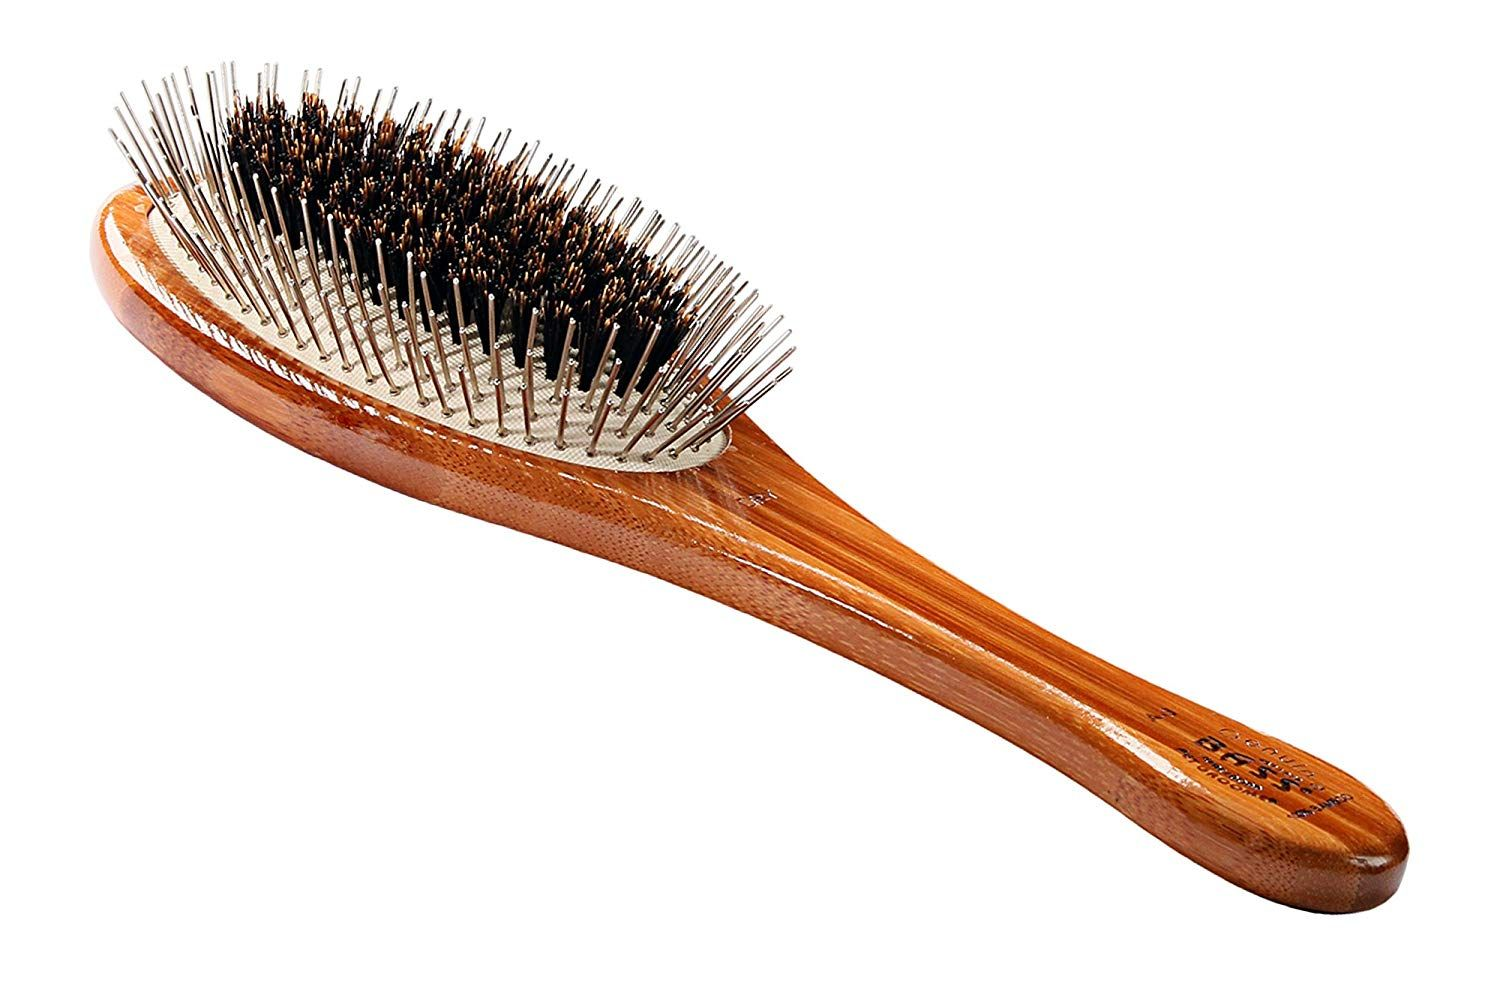 Bass Brushes Large Oval Wire And Boar Pet Brush With Bamboo Wood Handle Hope That You Actually Do Enjoy The Image This Is Our Af Pet Brush Wood Handle Boar